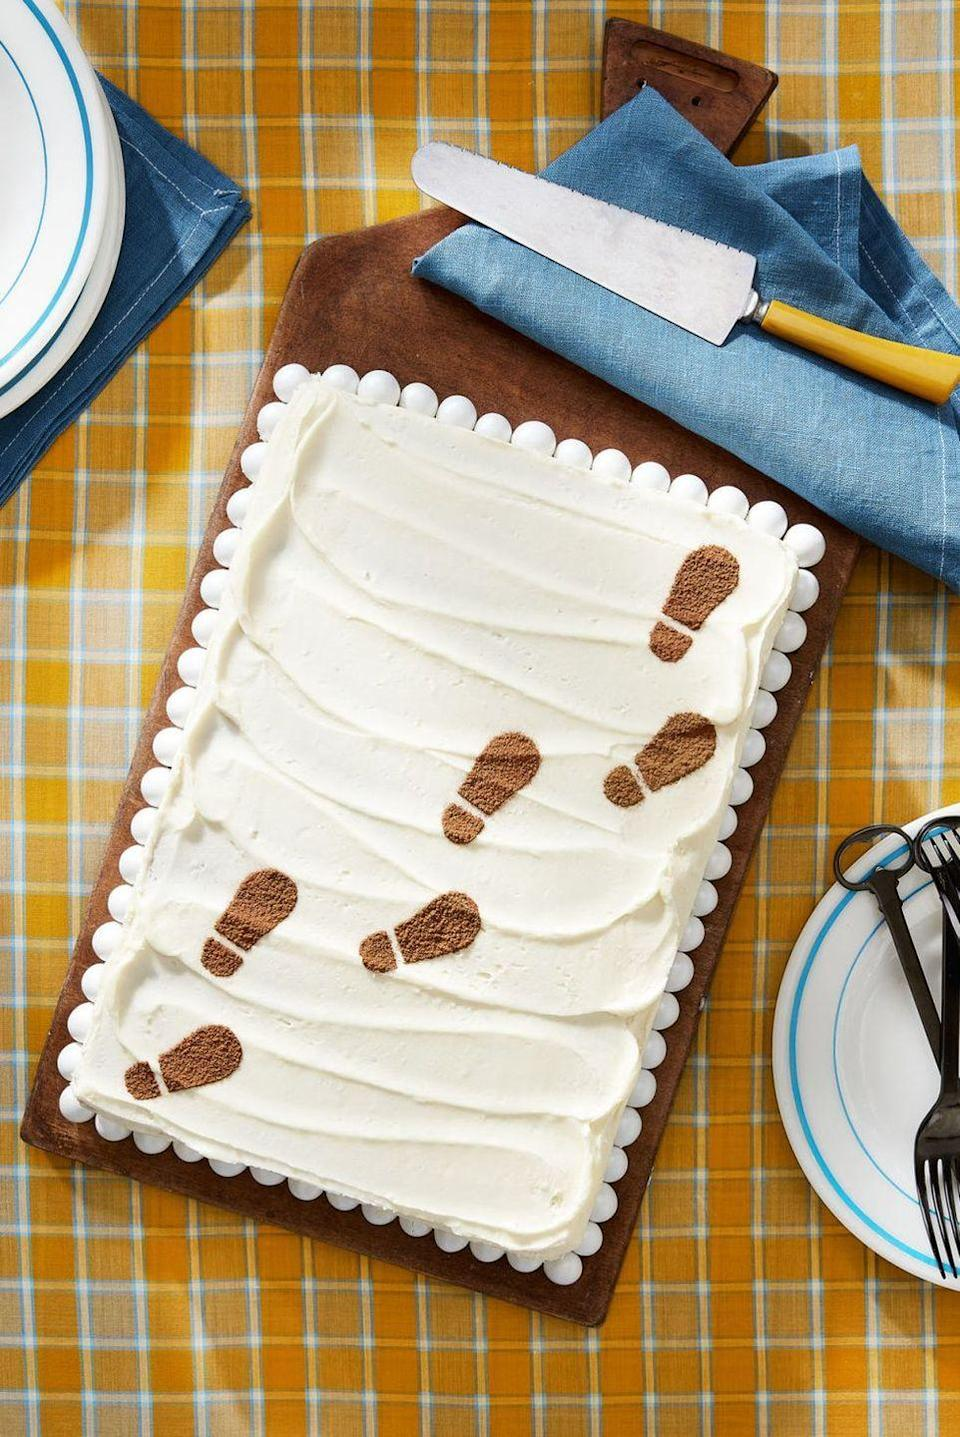 """<p>Sifted cocoa powder tracks make this easy vanilla cake perfect for a murder-mystery Halloween party.</p><p><em><a href=""""https://www.countryliving.com/food-drinks/recipes/a44611/malted-sheet-cake-recipe/"""" rel=""""nofollow noopener"""" target=""""_blank"""" data-ylk=""""slk:Get the recipe from Country Living »"""" class=""""link rapid-noclick-resp"""">Get the recipe from Country Living »</a></em></p><p><strong>RELATED: </strong><a href=""""https://www.goodhousekeeping.com/holidays/halloween-ideas/g565/halloween-party-ideas/"""" rel=""""nofollow noopener"""" target=""""_blank"""" data-ylk=""""slk:80 Fun and Creepy Ideas for a Halloween Party to Remember"""" class=""""link rapid-noclick-resp"""">80 Fun and Creepy Ideas for a Halloween Party to Remember</a><br></p>"""